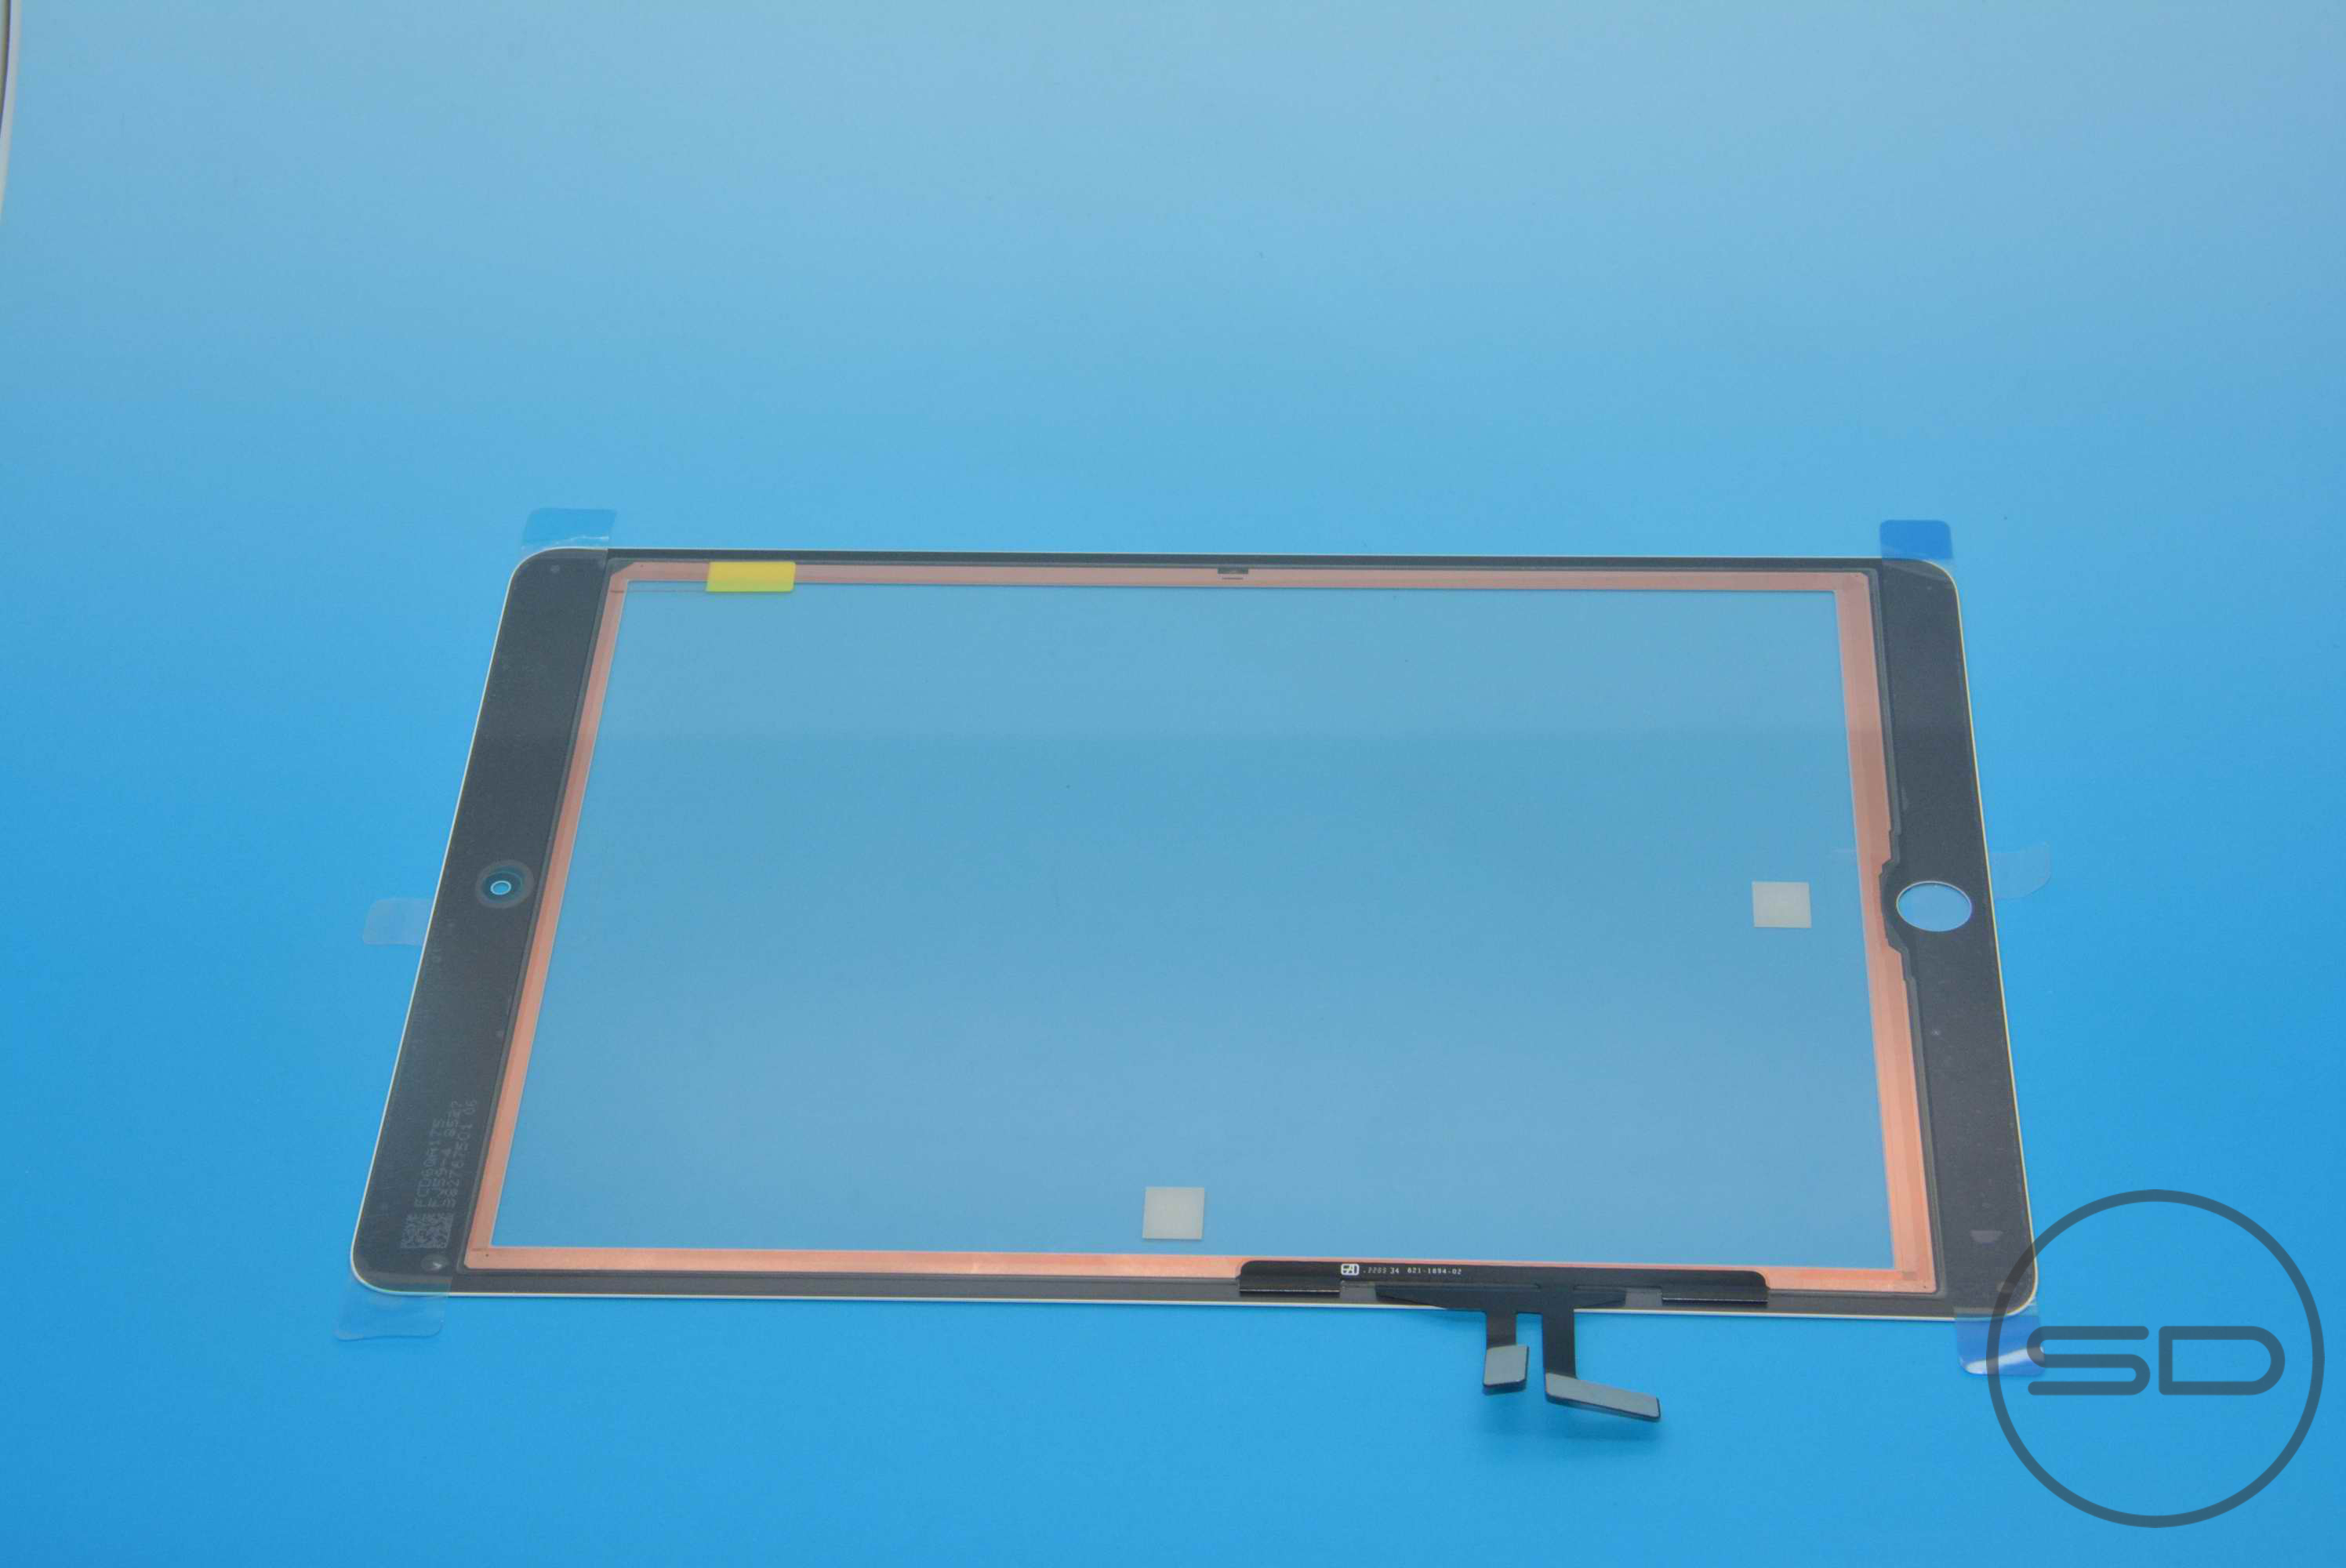 iPad 5 front panel (Sonny Dickson 003)